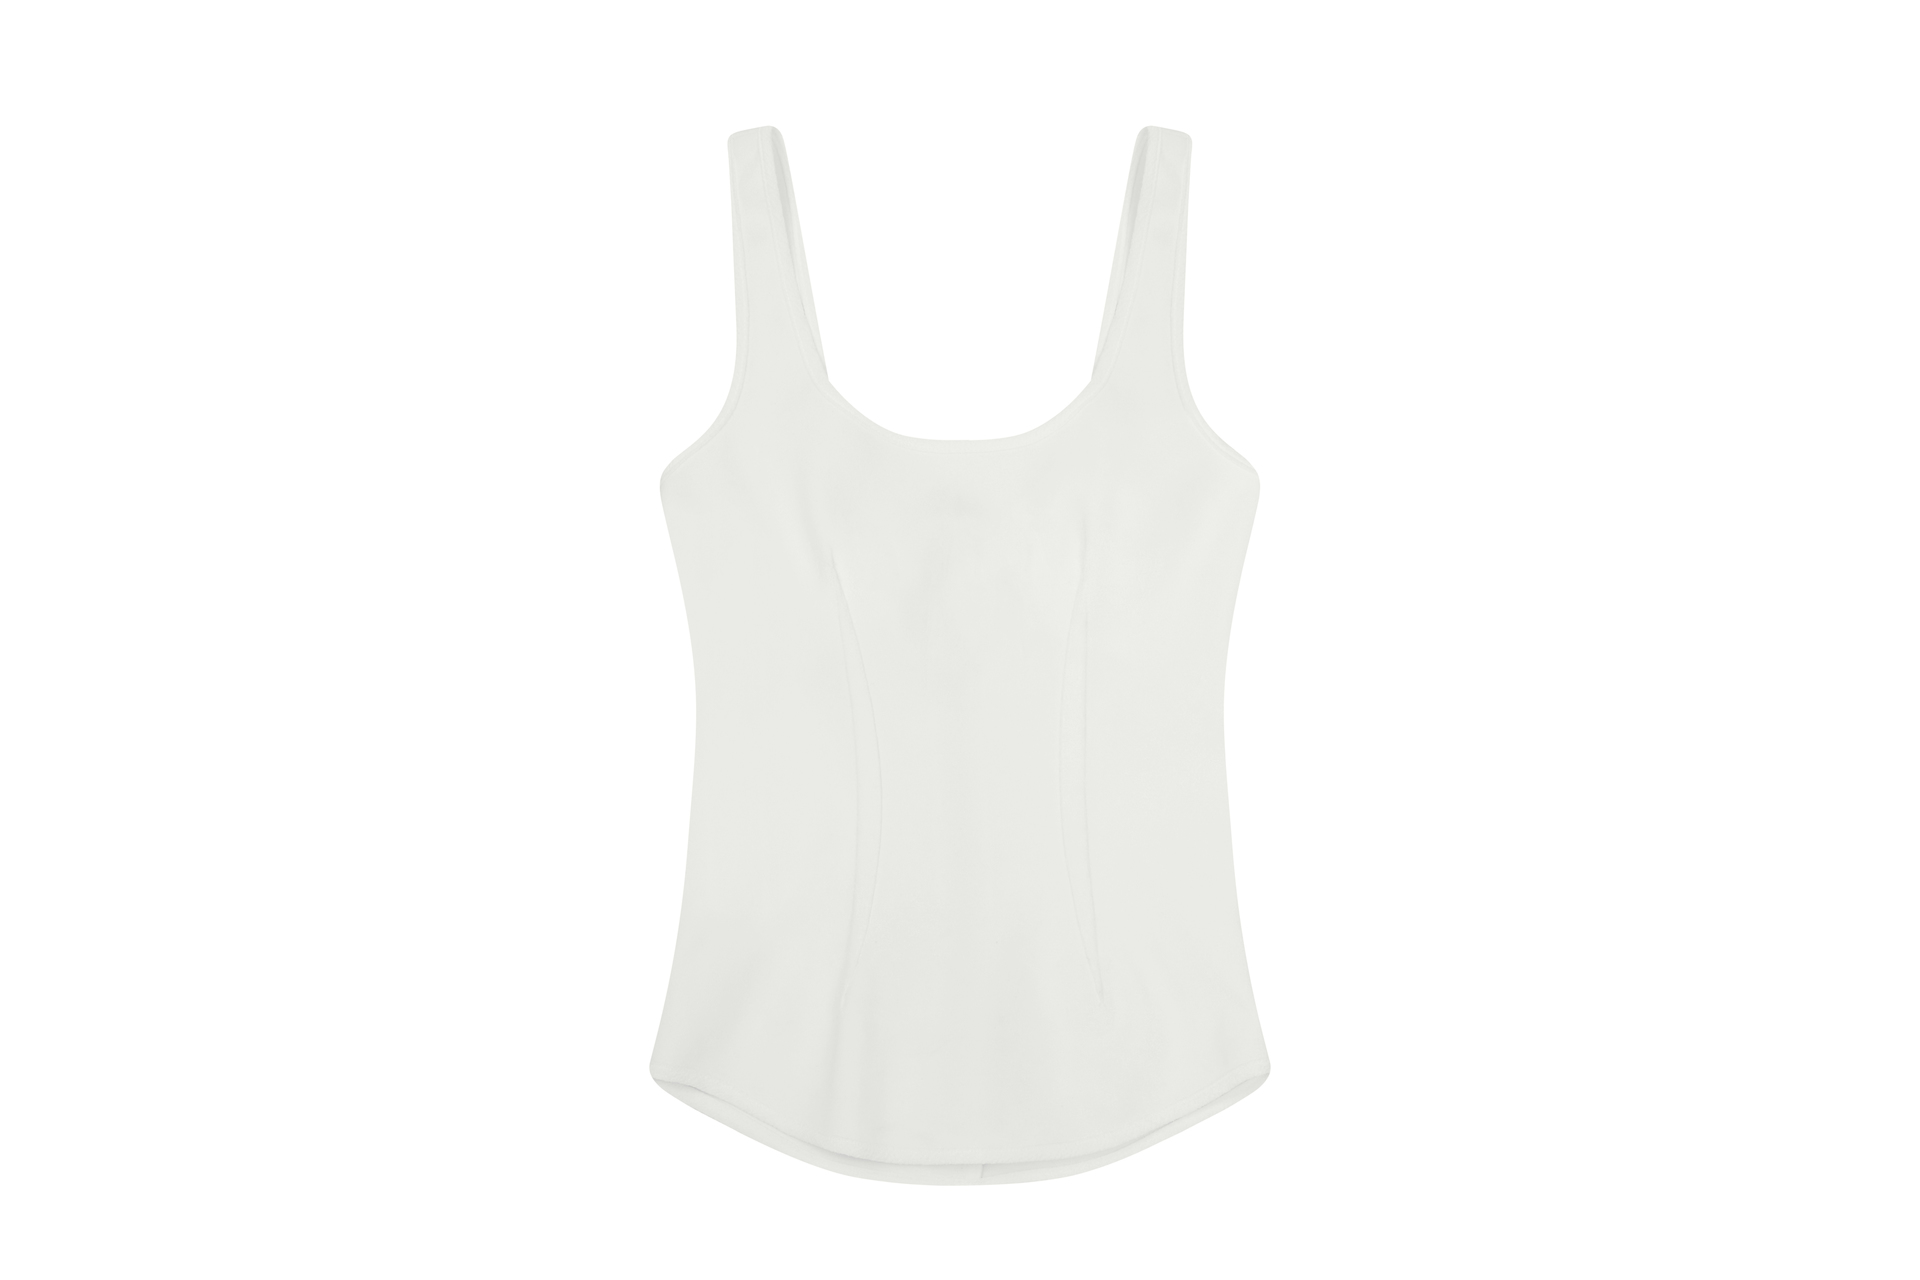 72dpi-239212e586-16.-BY-JOHNNY,-Bonded-Structure-Zip-Top-White,-180,-www.byjohnny.com.au